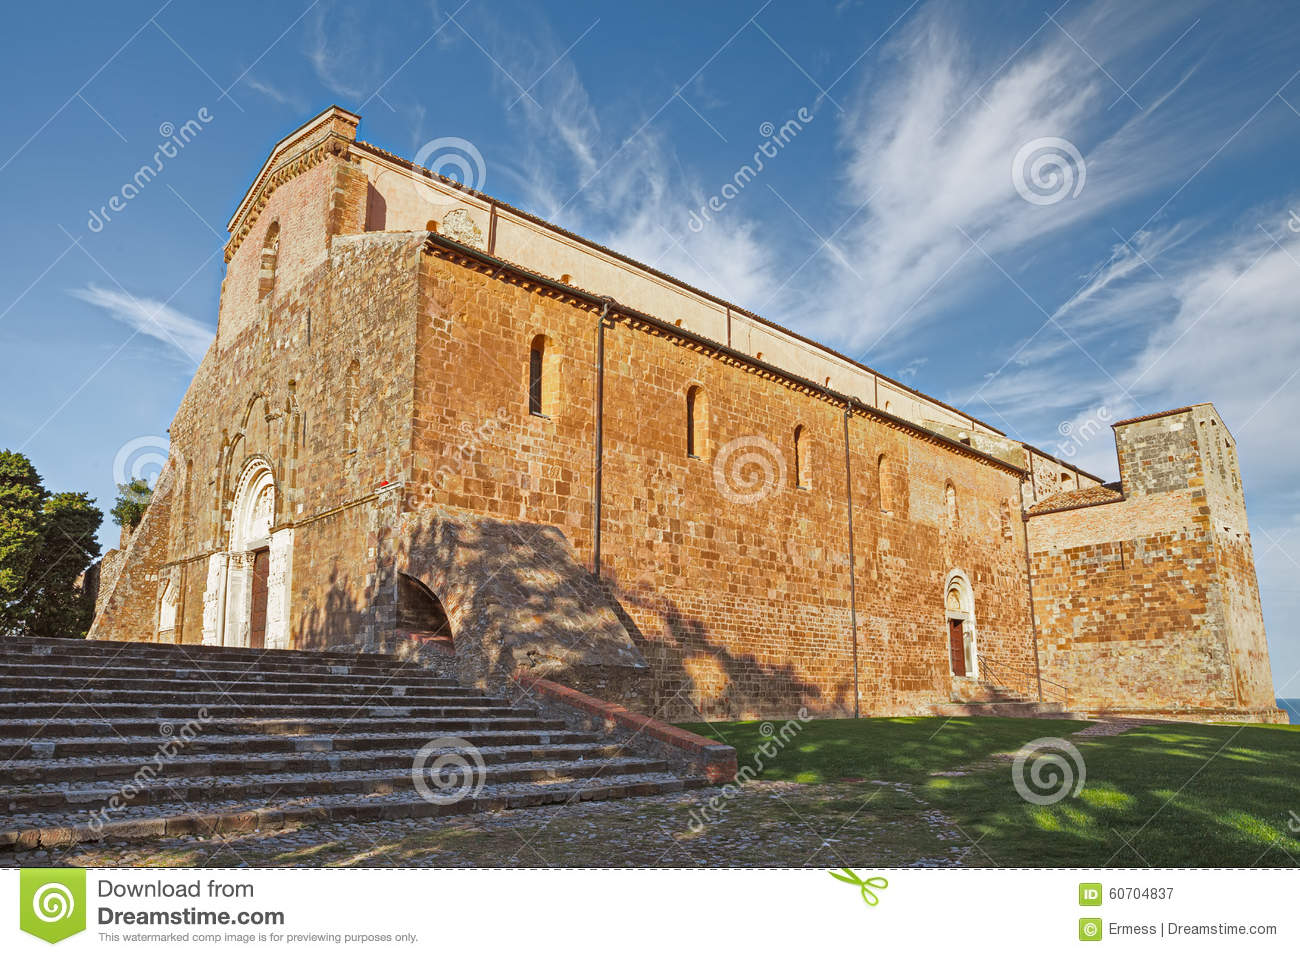 The Abbey Of San Giovanni In Venere In Fossacesia, Abruzzo, Ital.